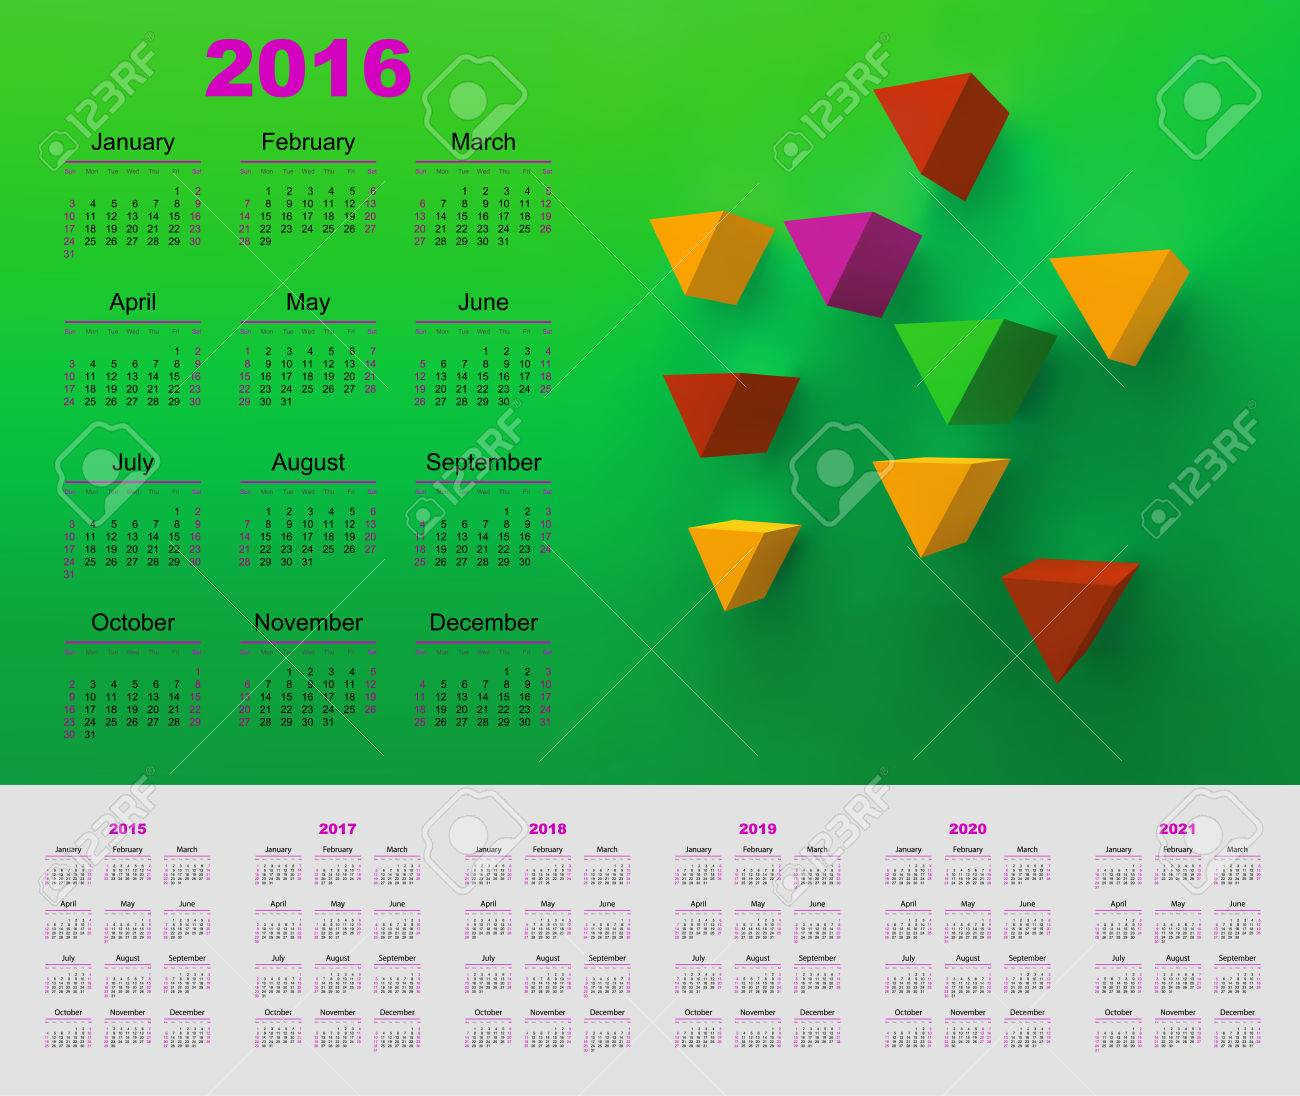 Calendar For 2016 And 2020 And 2021 Pictures